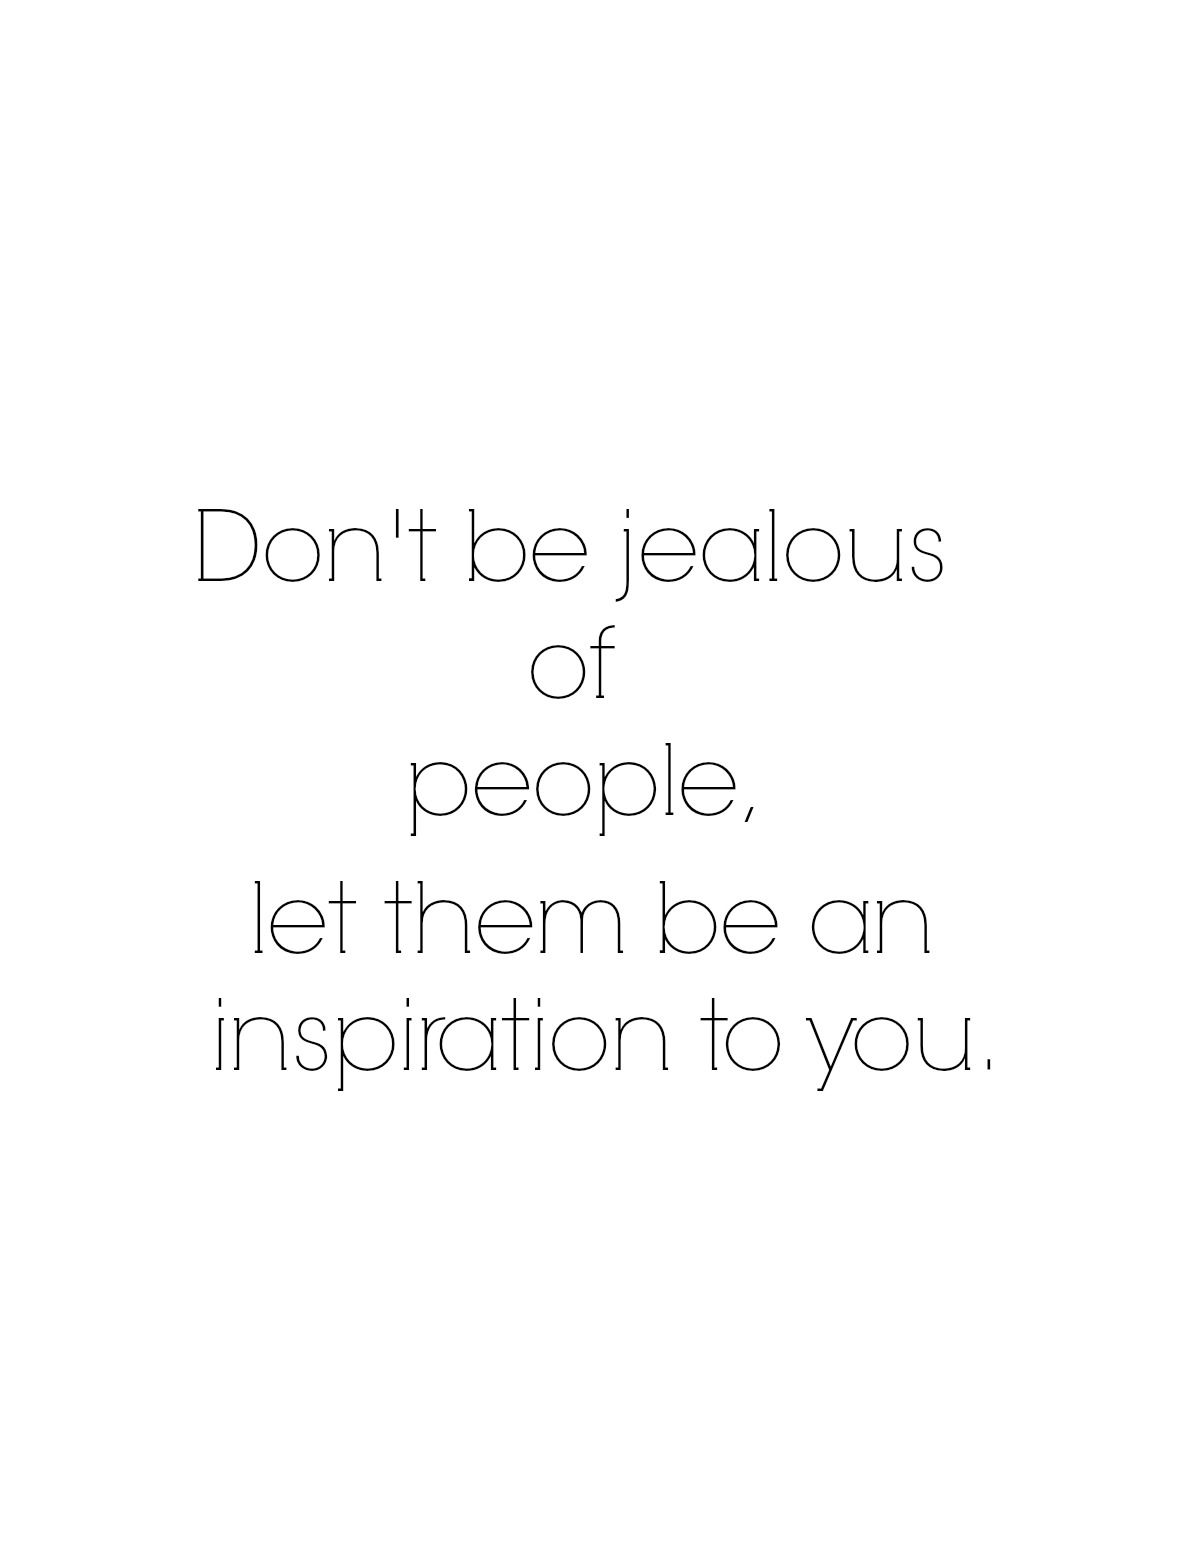 Don't be jealous of people, let them be an inspiration to you.